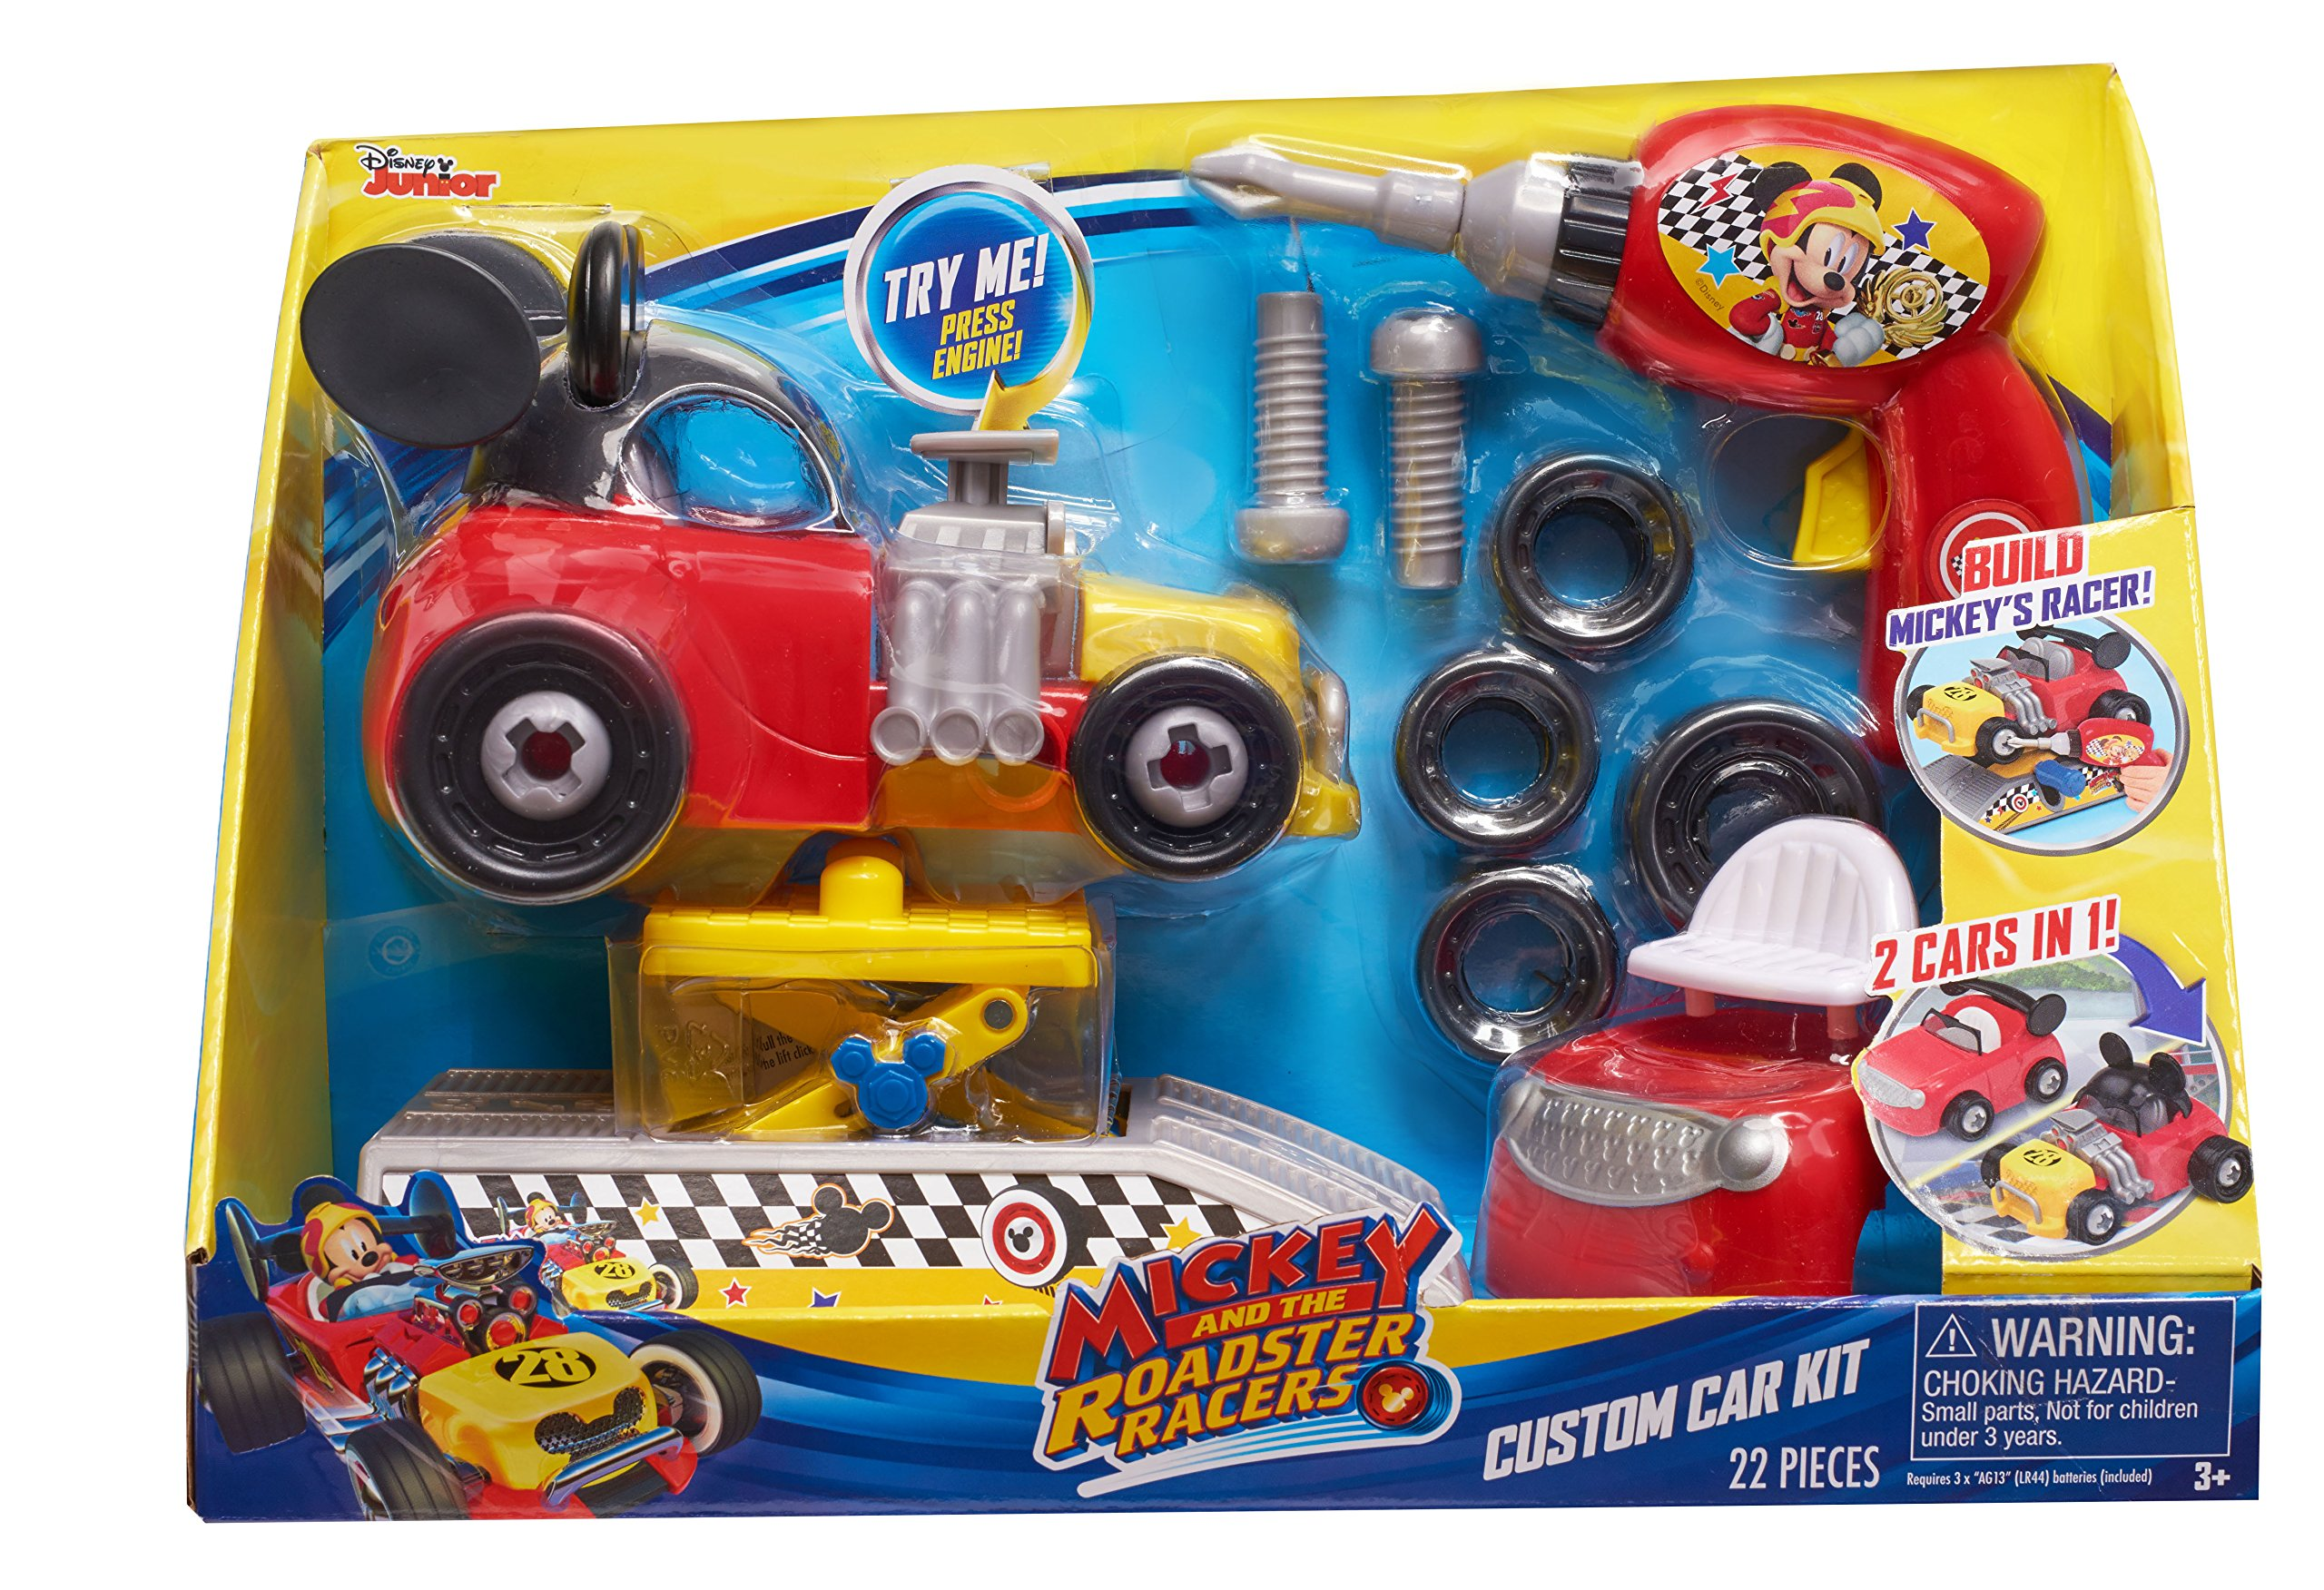 MICKEY ROADSTERS Racers Custom Car Kit